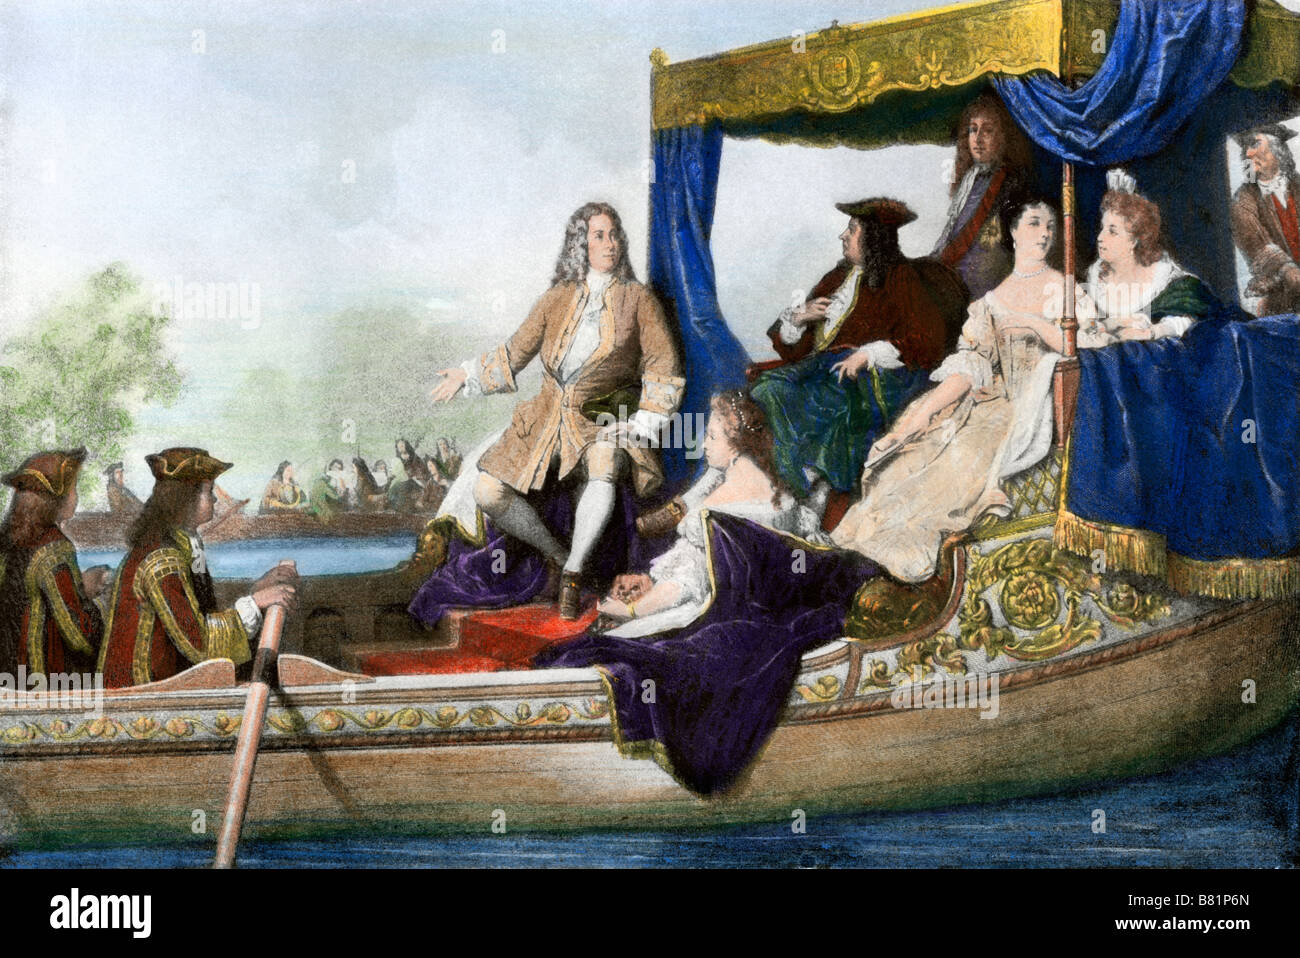 Handel's water music performed as a river concert for George I of England. Hand-colored halftone of an illustration - Stock Image